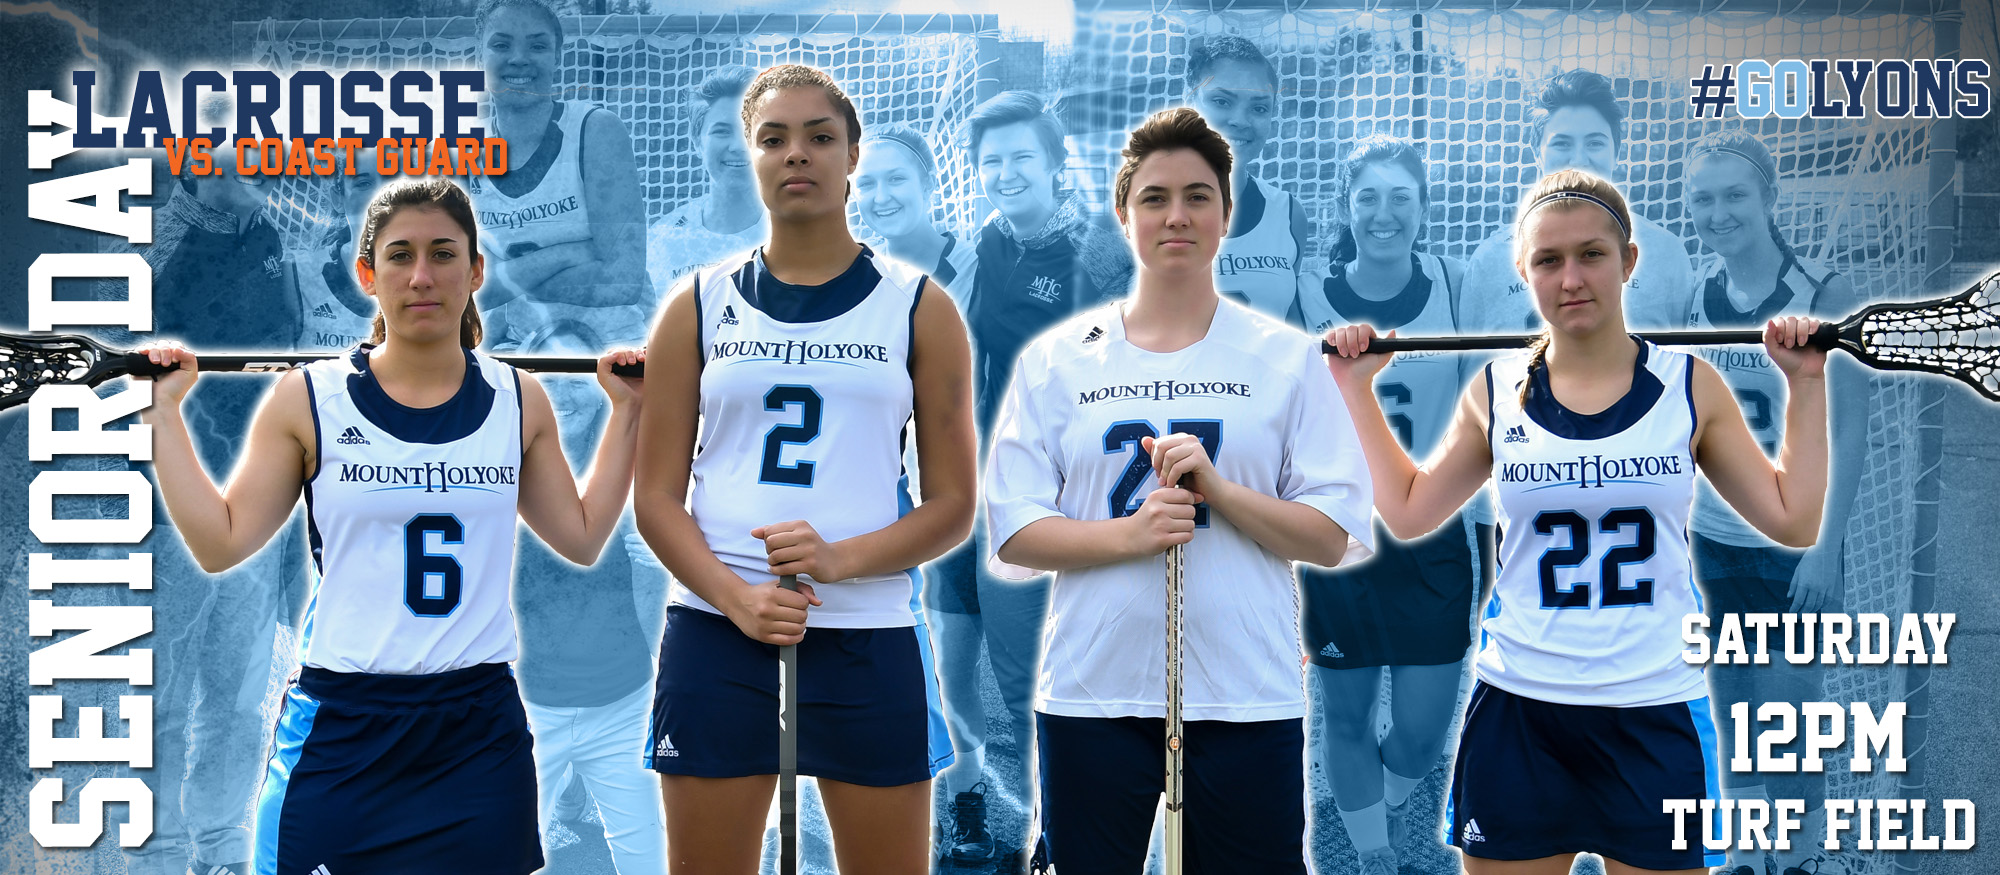 Senior day graphic depicting the Lyons lacrosse team seniors Kaiti Braz, Leila Kouakou, Clarissa Leight and Julia Lankin. April 21, 2018 will be their senior day at 12pm against Coast Guard.